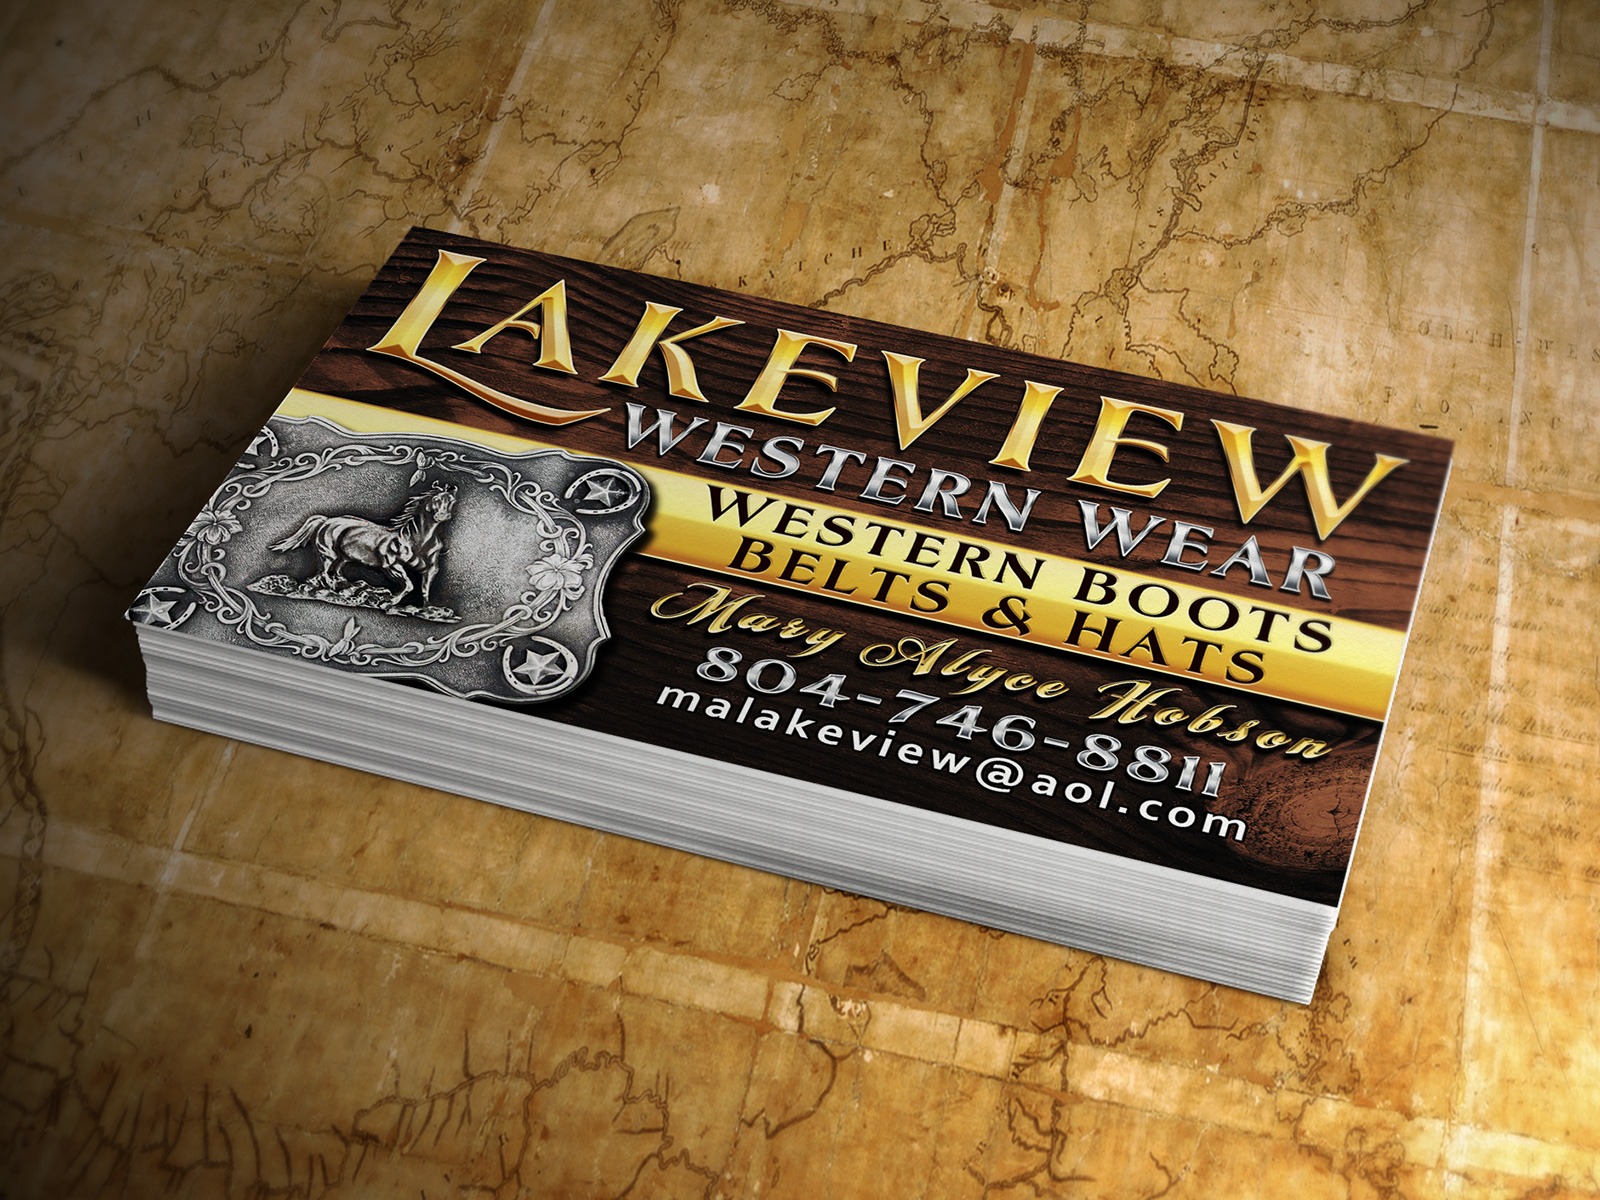 656971db2a9 Lakeview Western Wear Business Cards - Logo Advantage